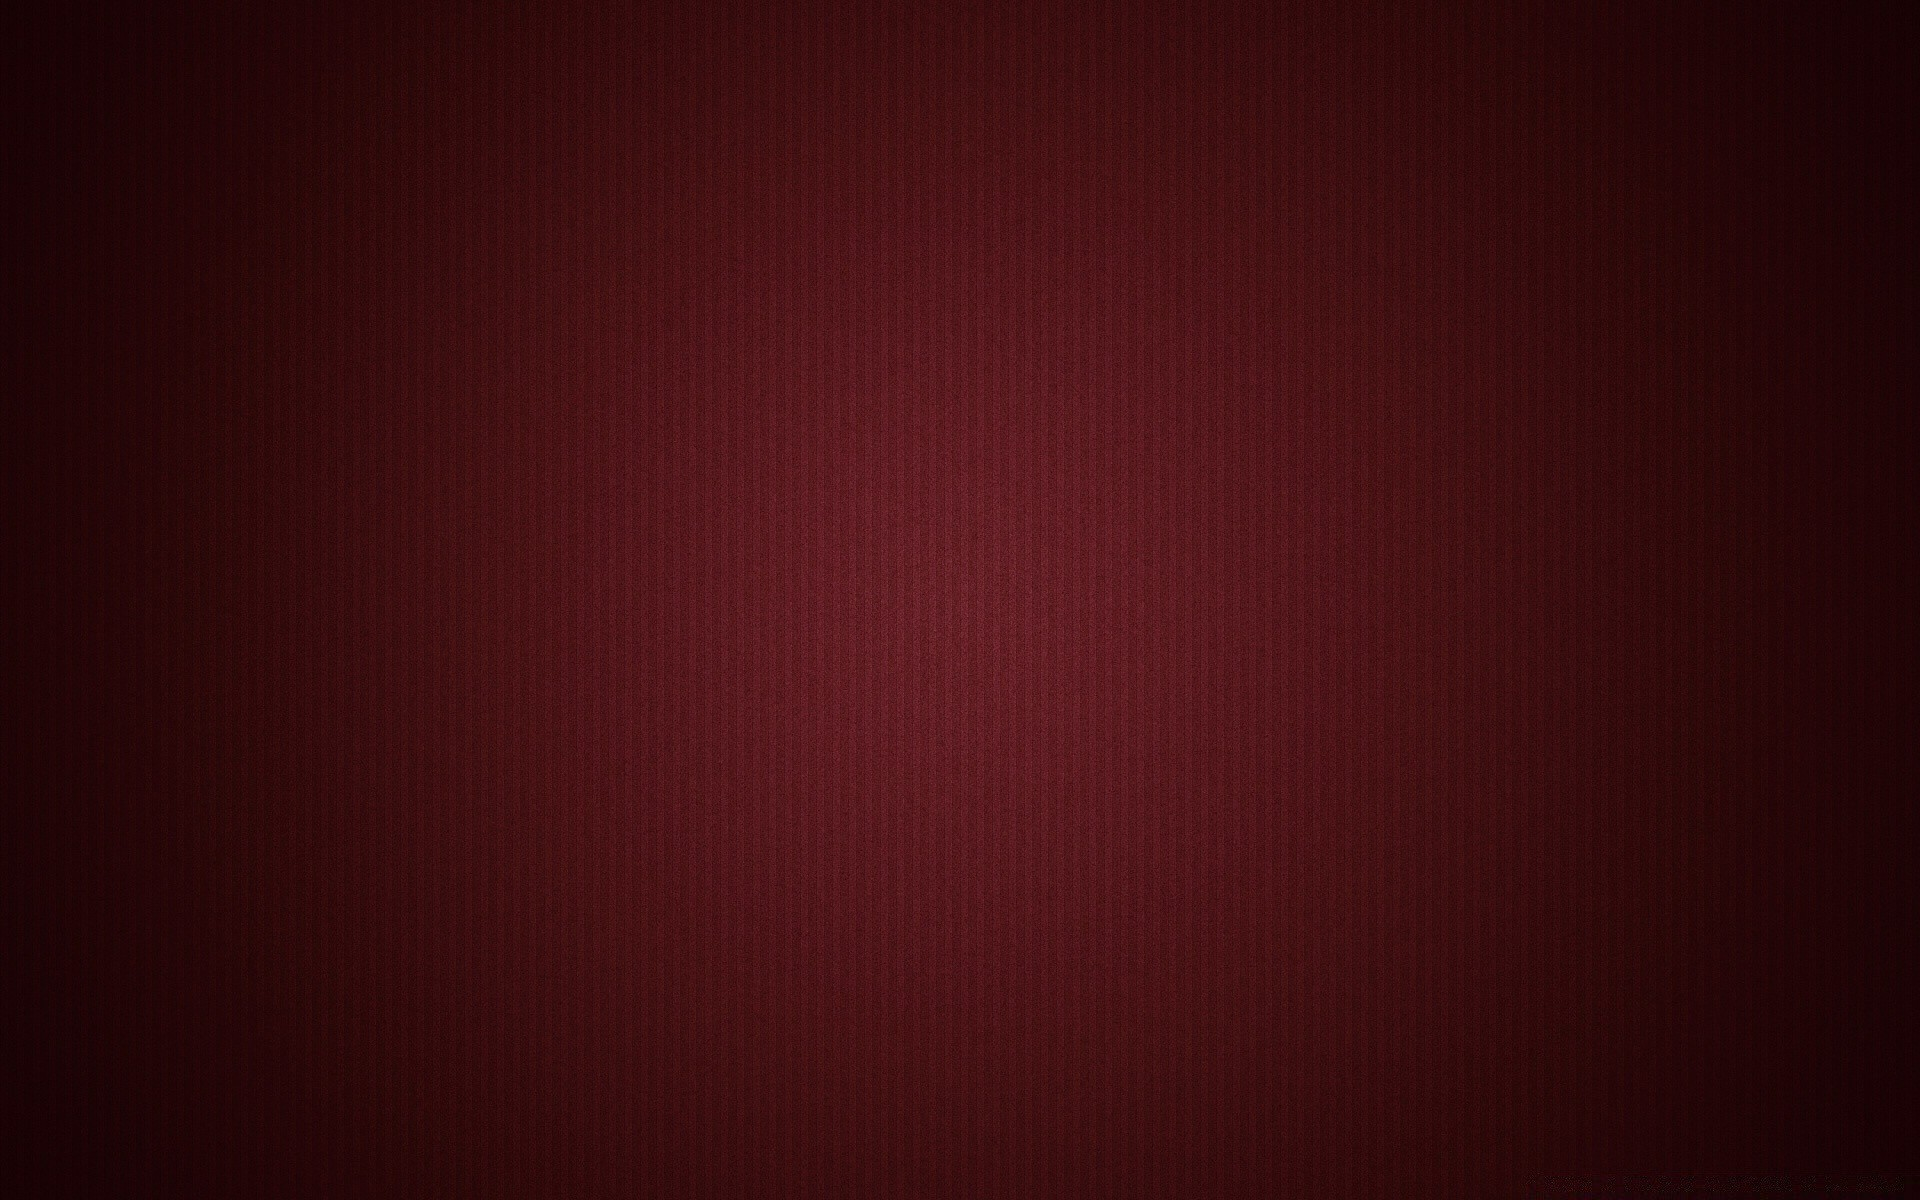 Red Pattern IPhone Wallpapers For Free